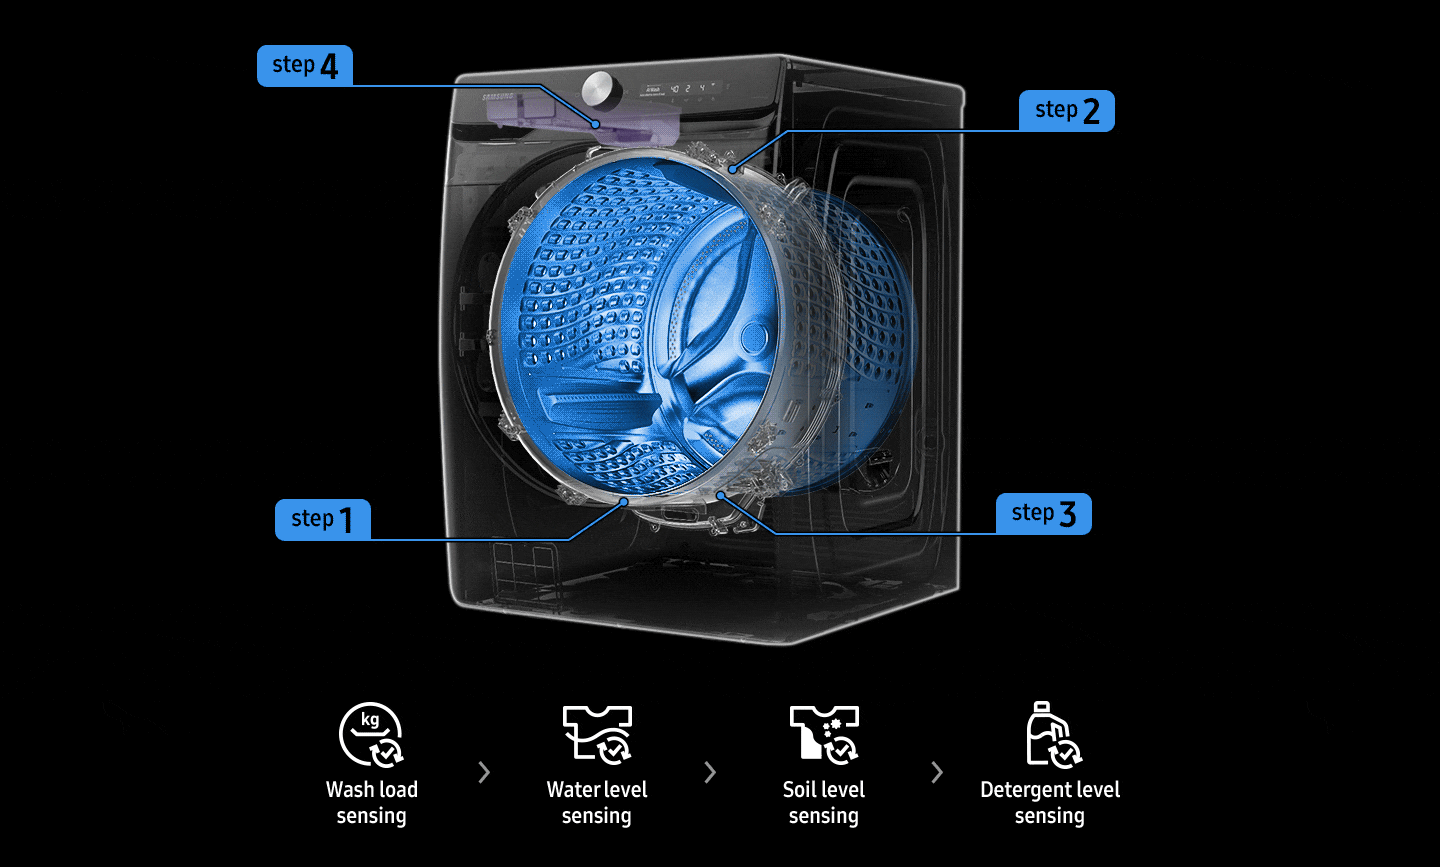 The location of the wash load, water level, soil level, and detergent level sensors appears on the transparent washer.